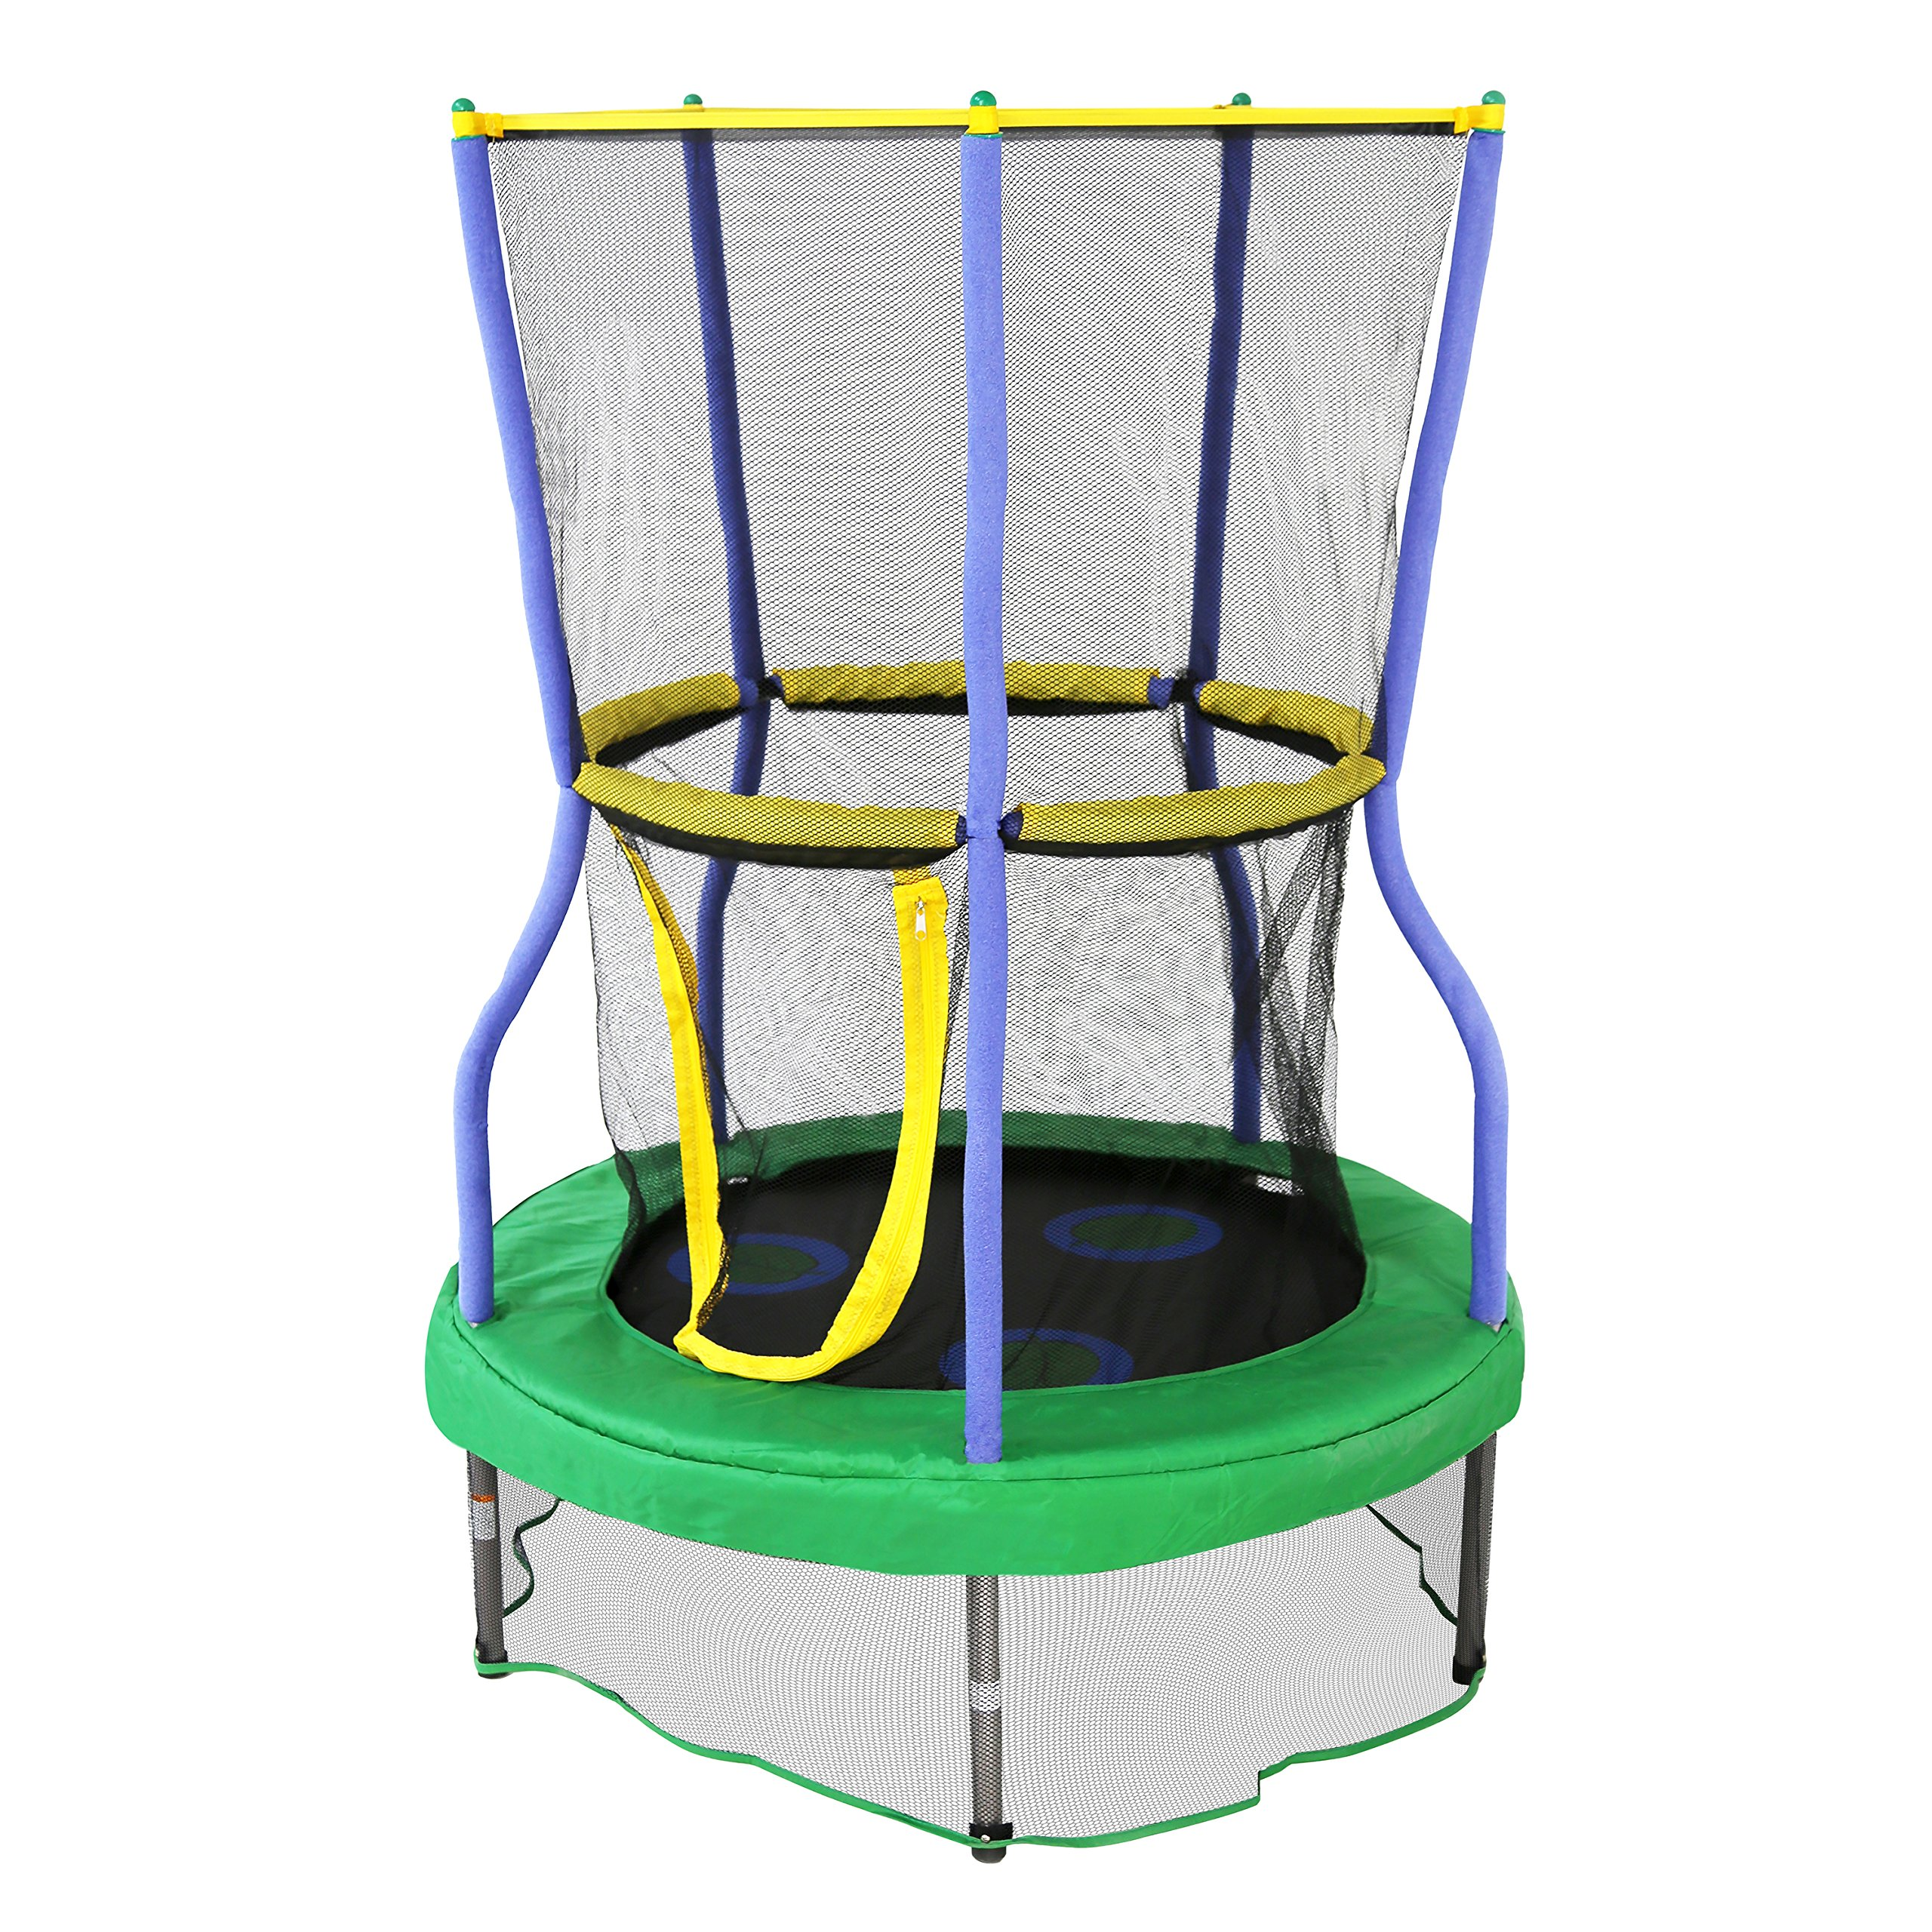 "Skywalker Trampolines 40"" Round Lily Pad Adventure Trampoline Mini Bouncer with Enclosure"